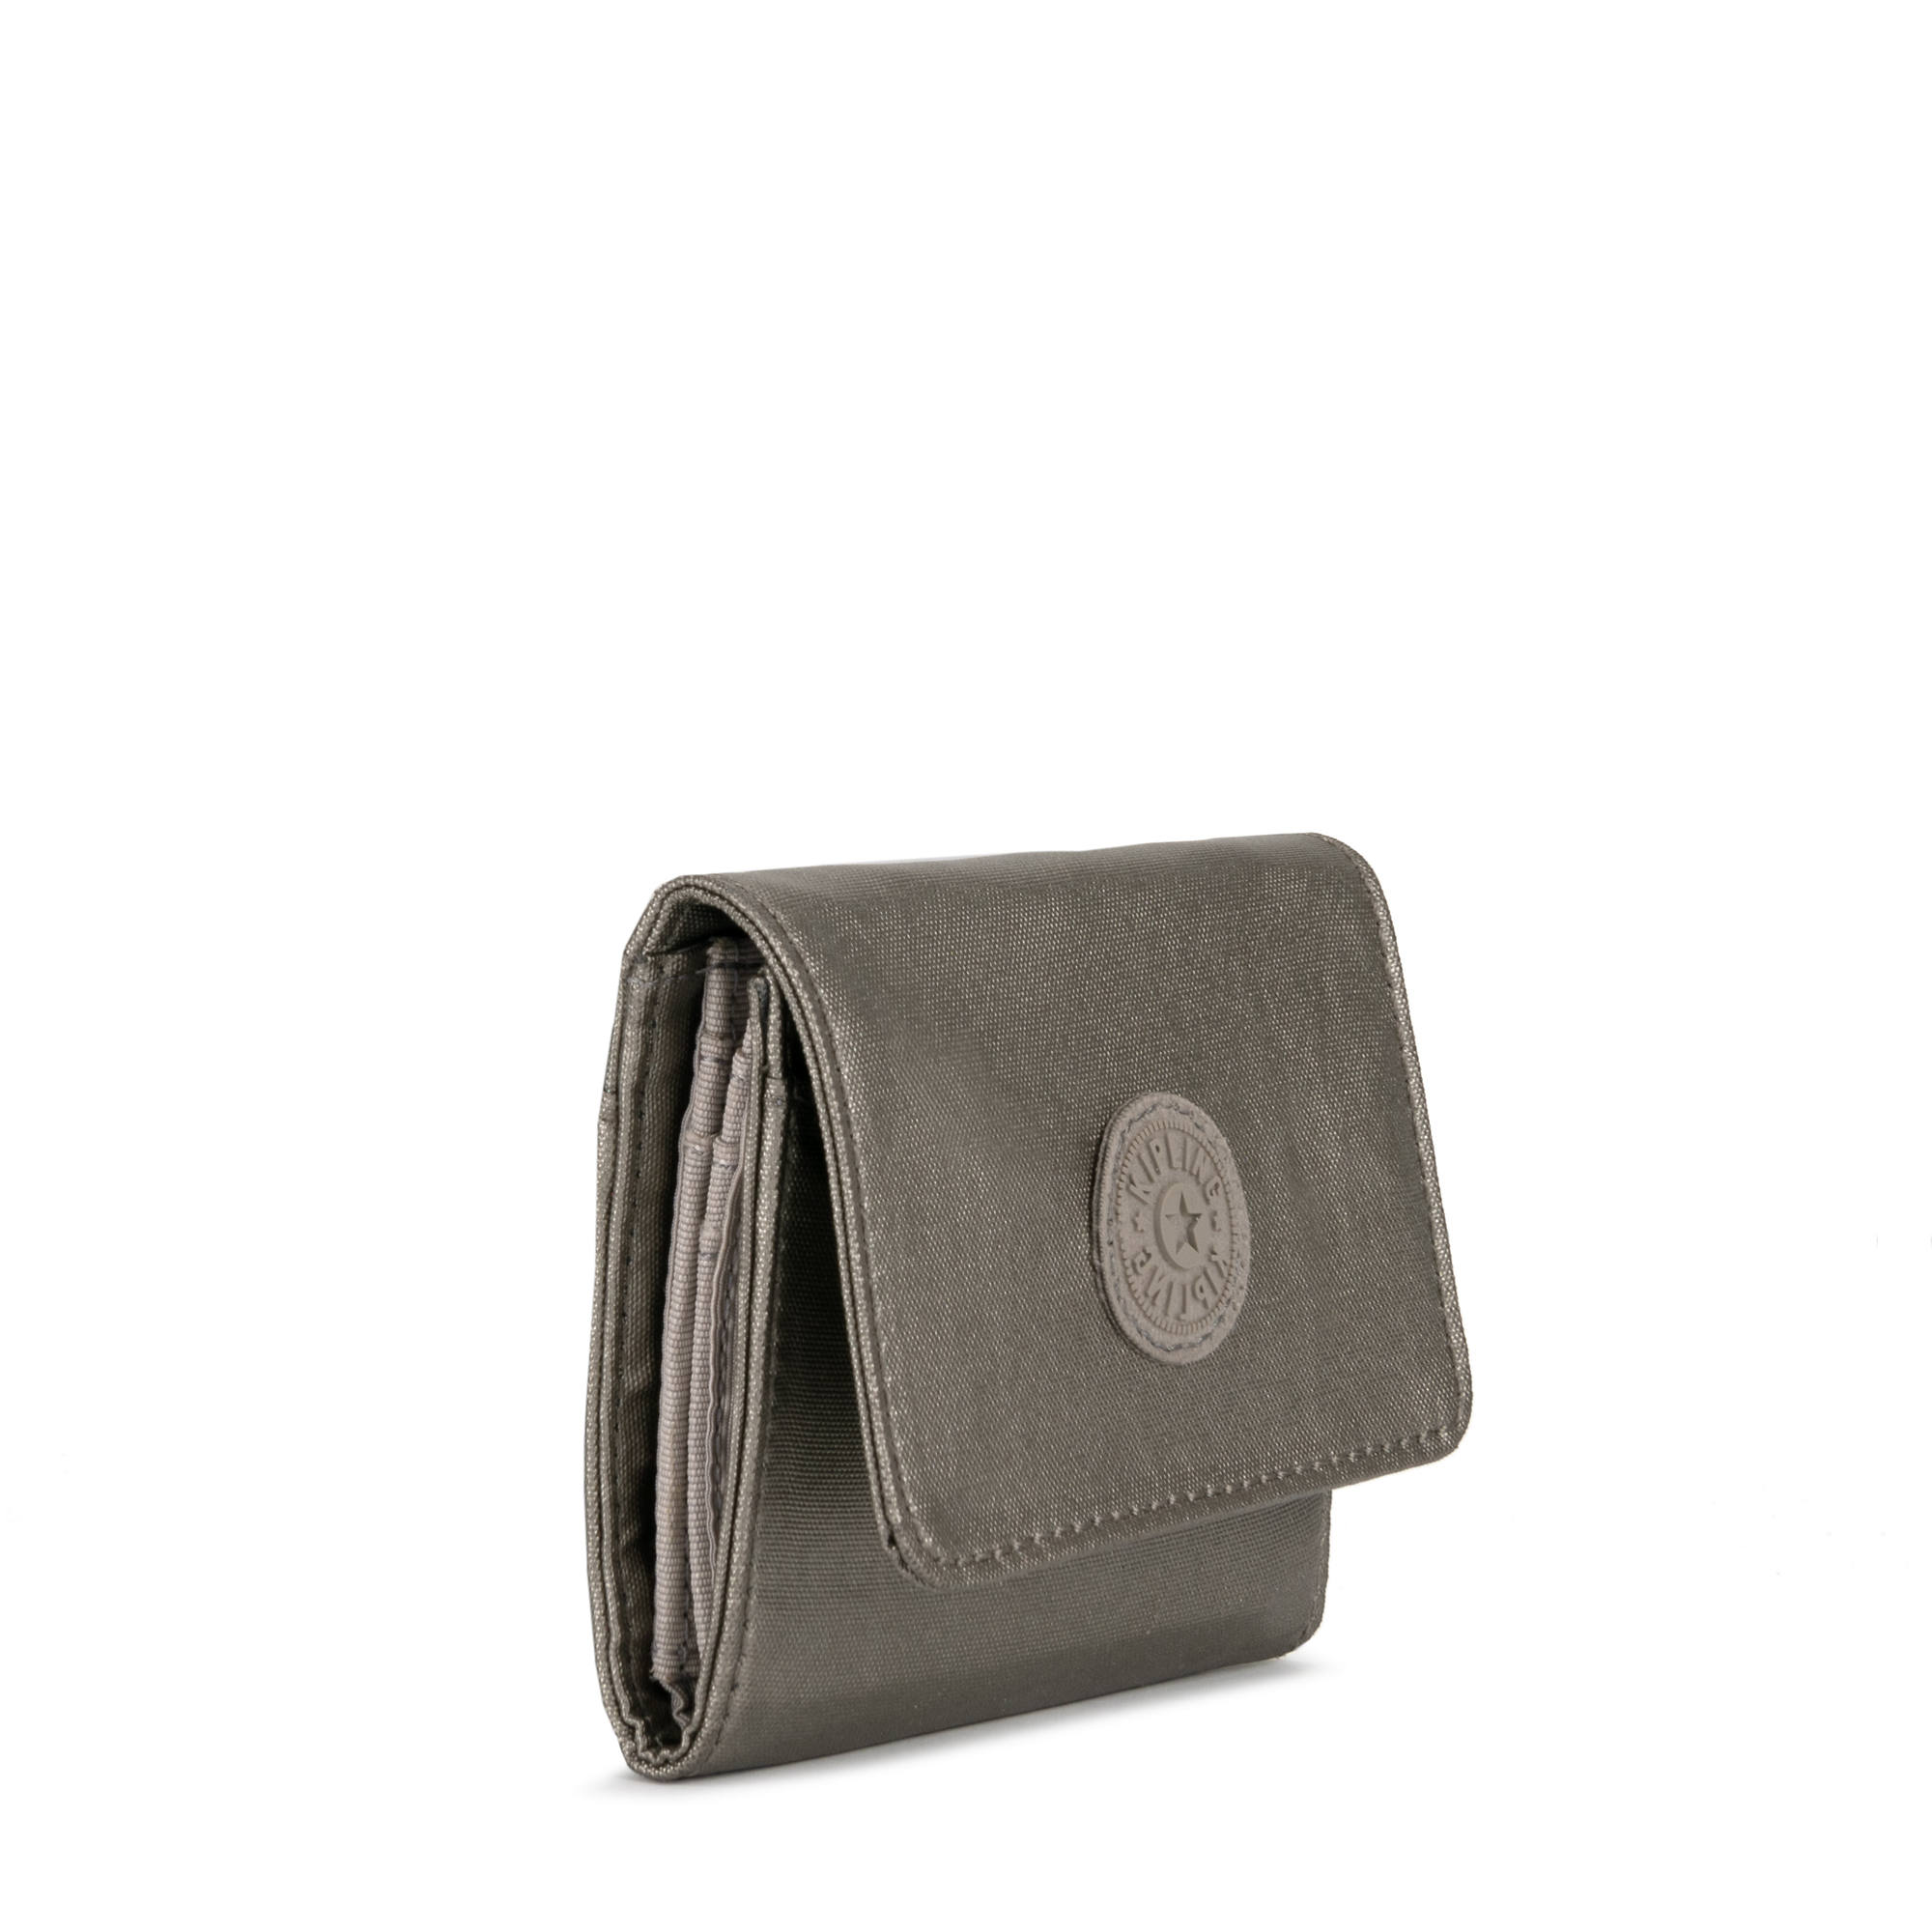 Kipling-Cece-Metallic-Small-Wallet thumbnail 14